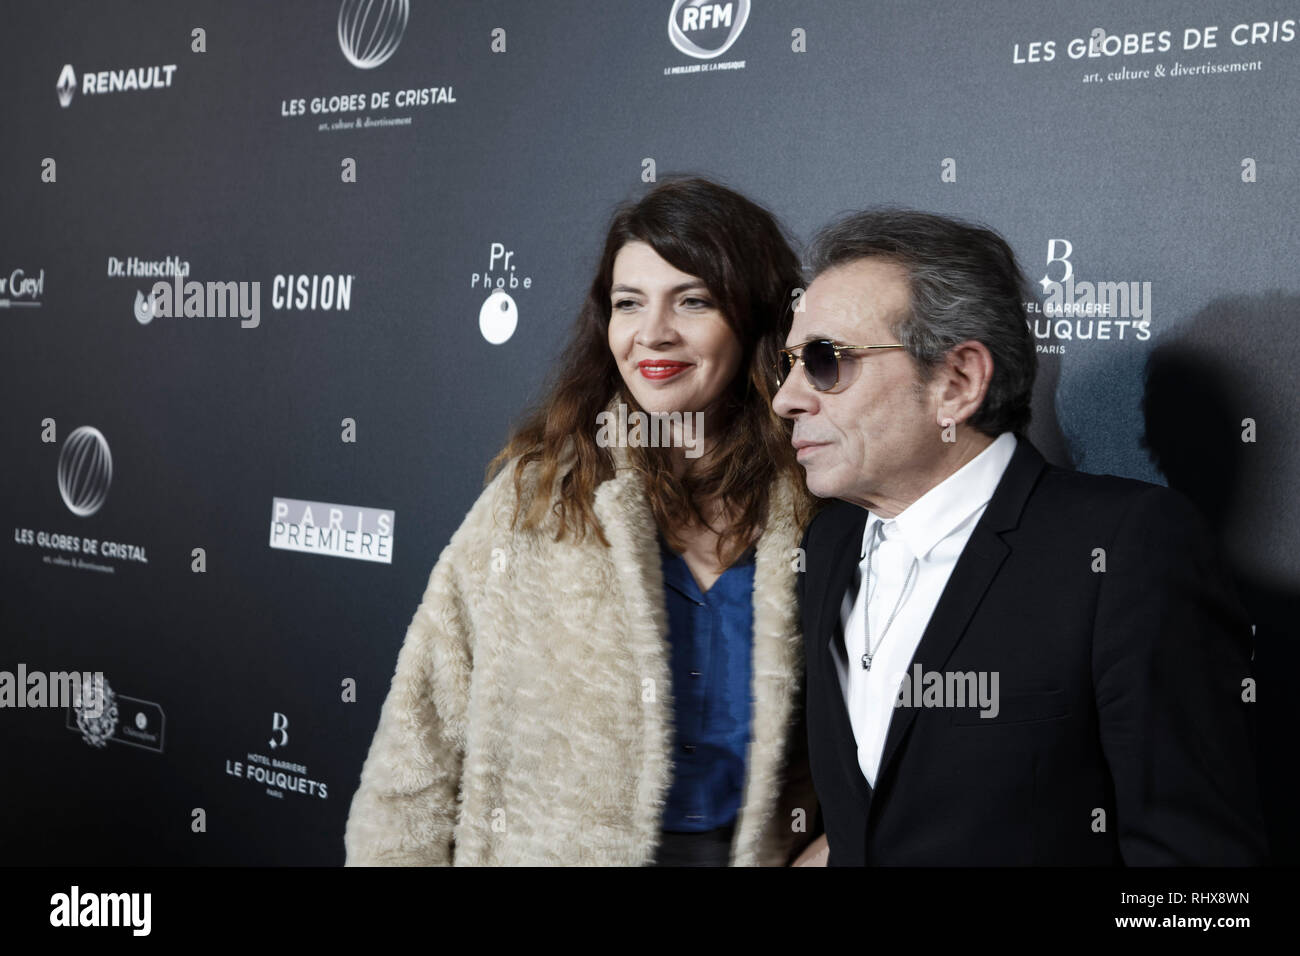 Paris, France. 4th Feb, 2019. Candice de La Richardière and Philippe Manœuvre attend the 14th Crystal Globes Ceremony at Salle Wagram on February 4, 2019 in Paris, France. Credit: Bernard Menigault/Alamy Live News - Stock Image